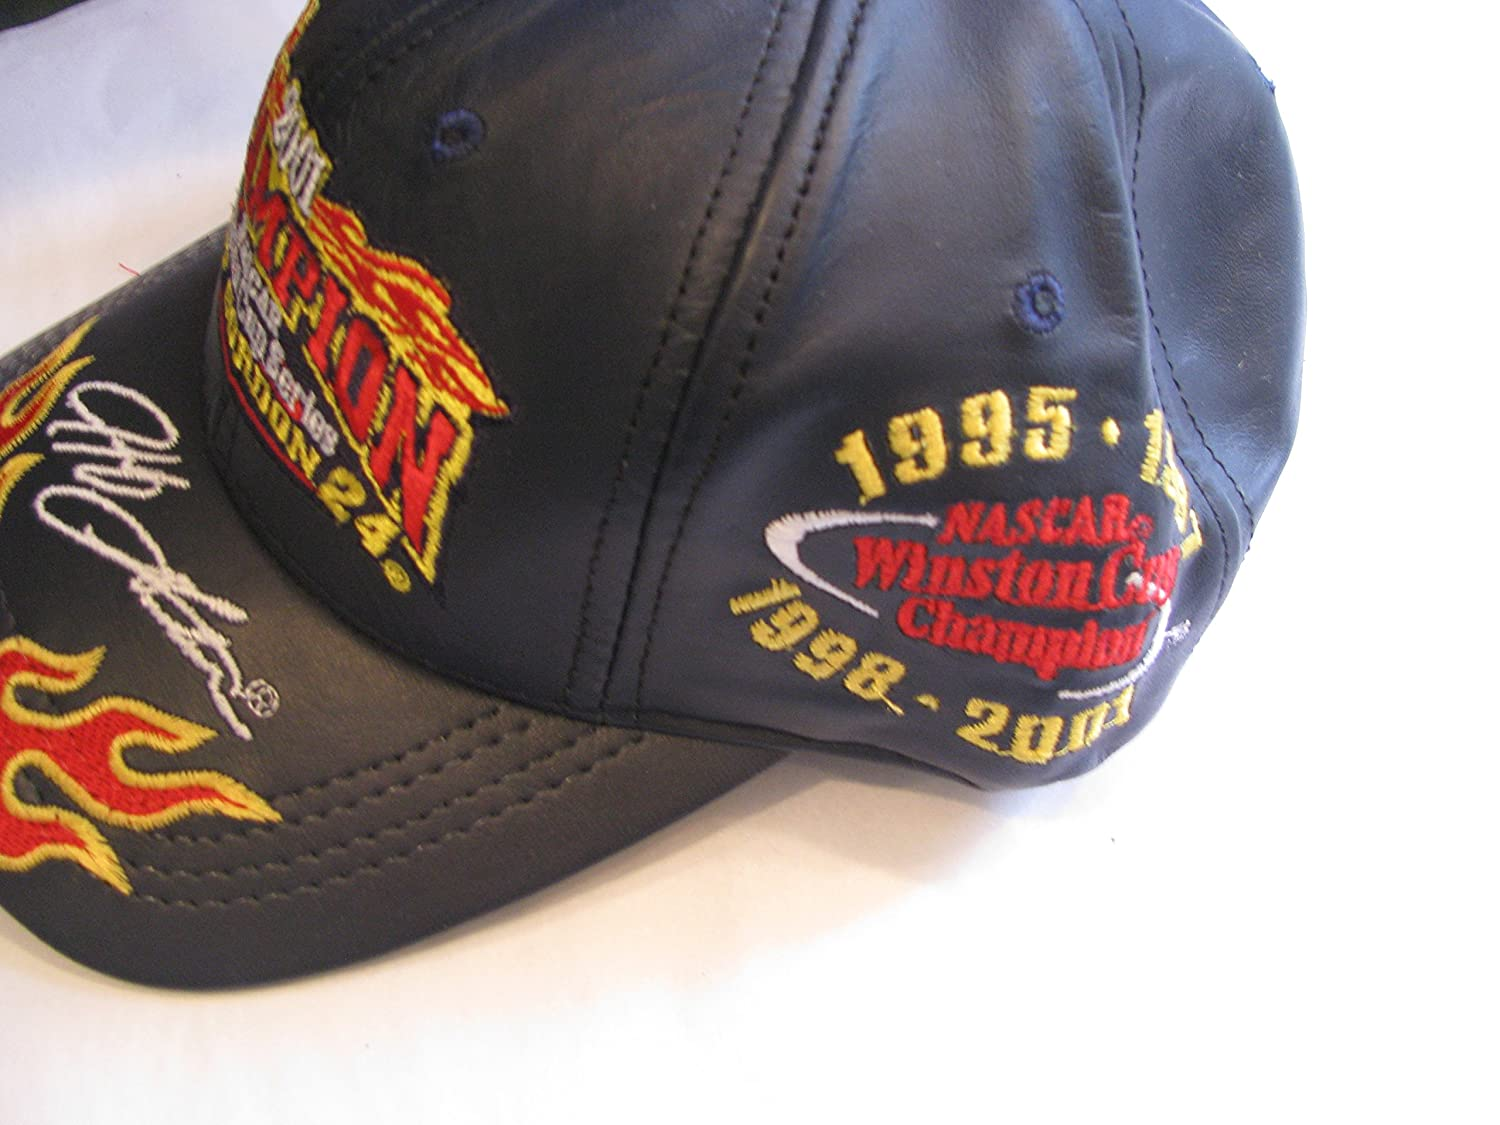 все цены на All Leather Jeff Gordon #24 2001 Winston Cup Series Champion Championship 1995 1997 1998 2001 Black With Red & Yellow Flames Highlights Hat Cap One Size Fits Most OSFM Chase Authentics онлайн